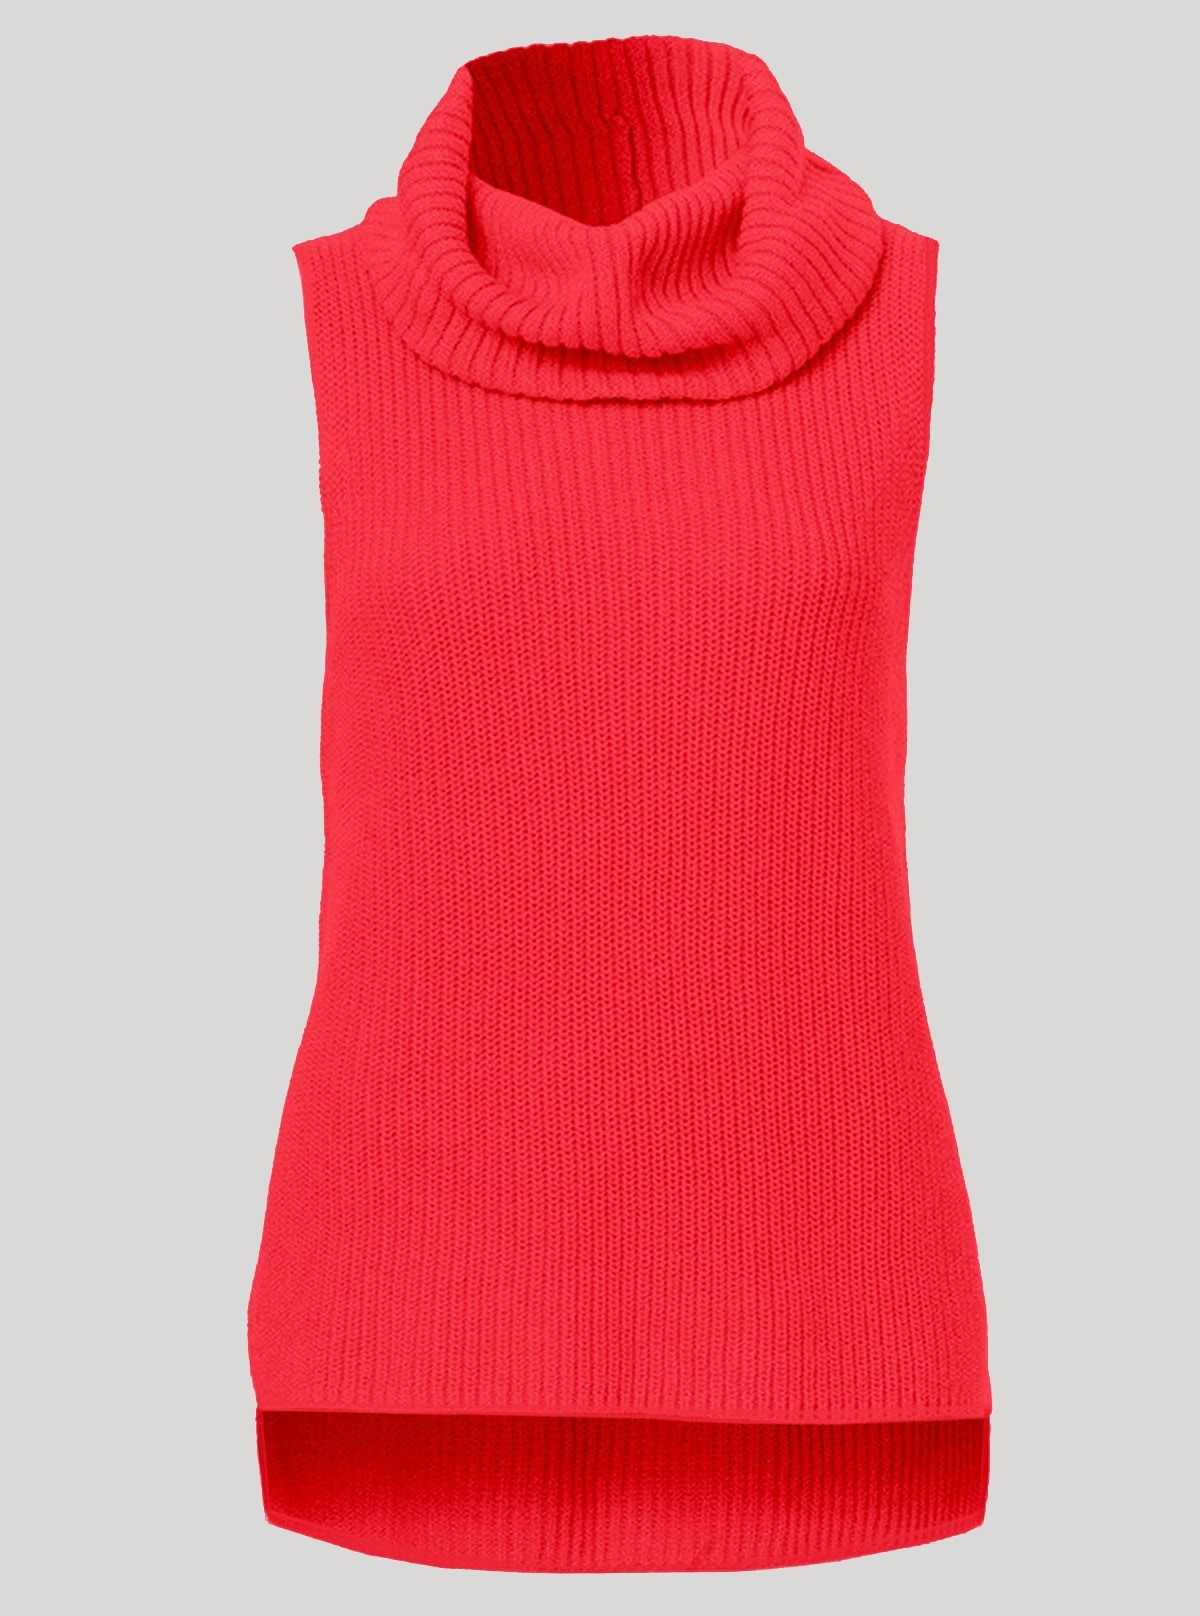 Fuschia Flat Knit High Neck Top Boer and Fitch - 1